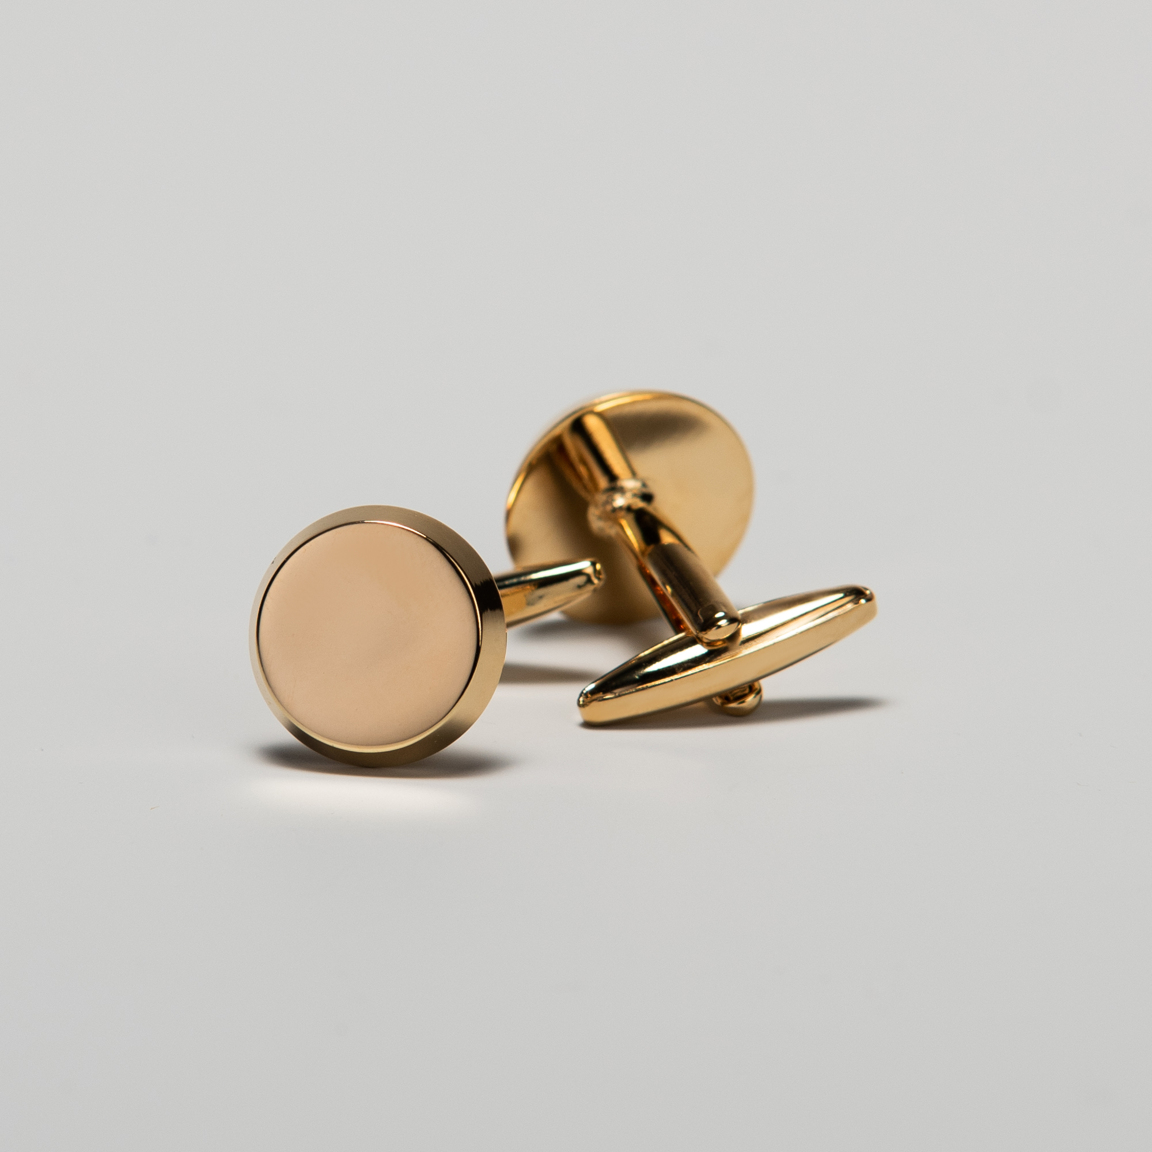 Gold circle cuff links